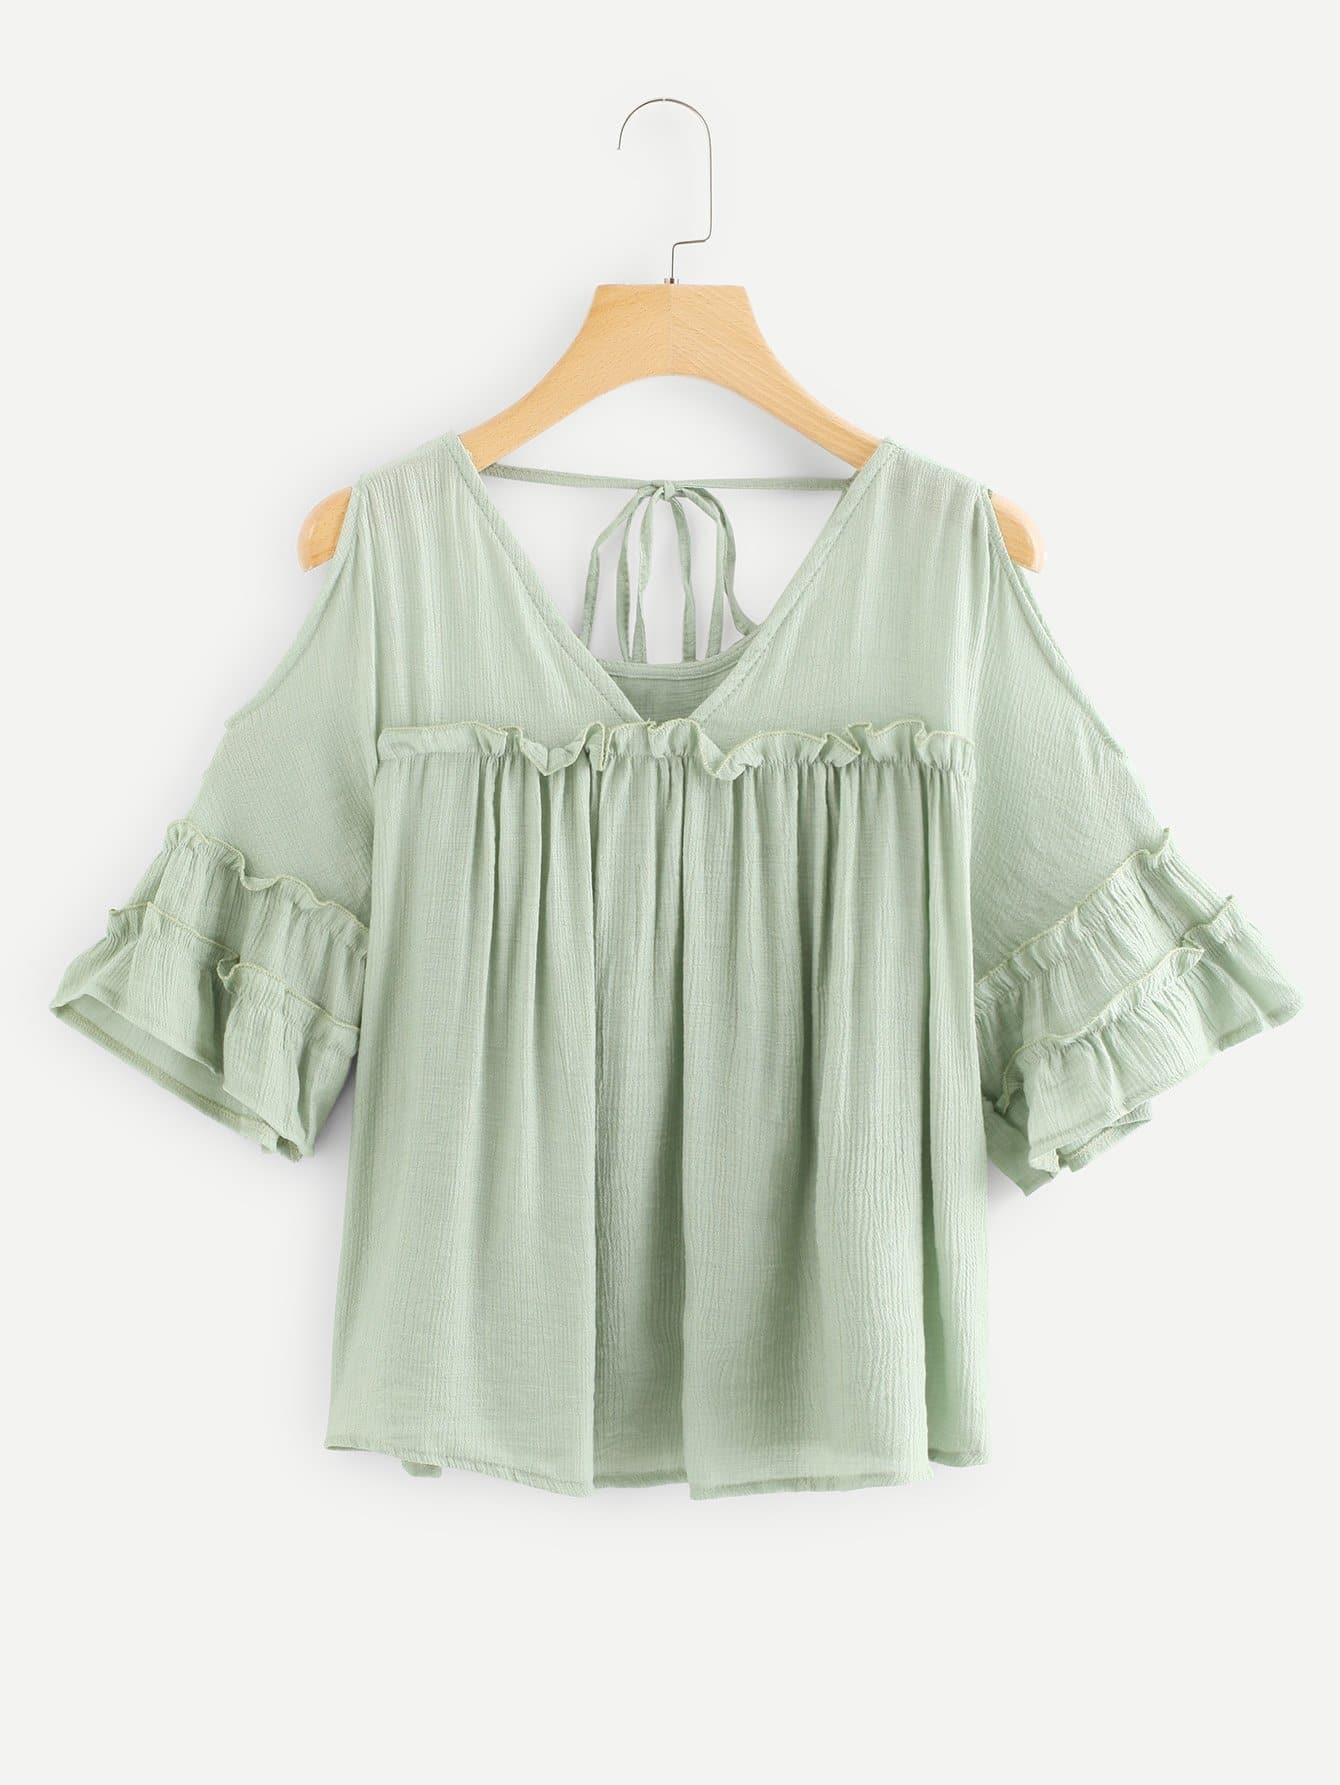 Open Shoulder Tie Back Ruffle Blouse open shoulder fishnet insert lace ruffle blouse